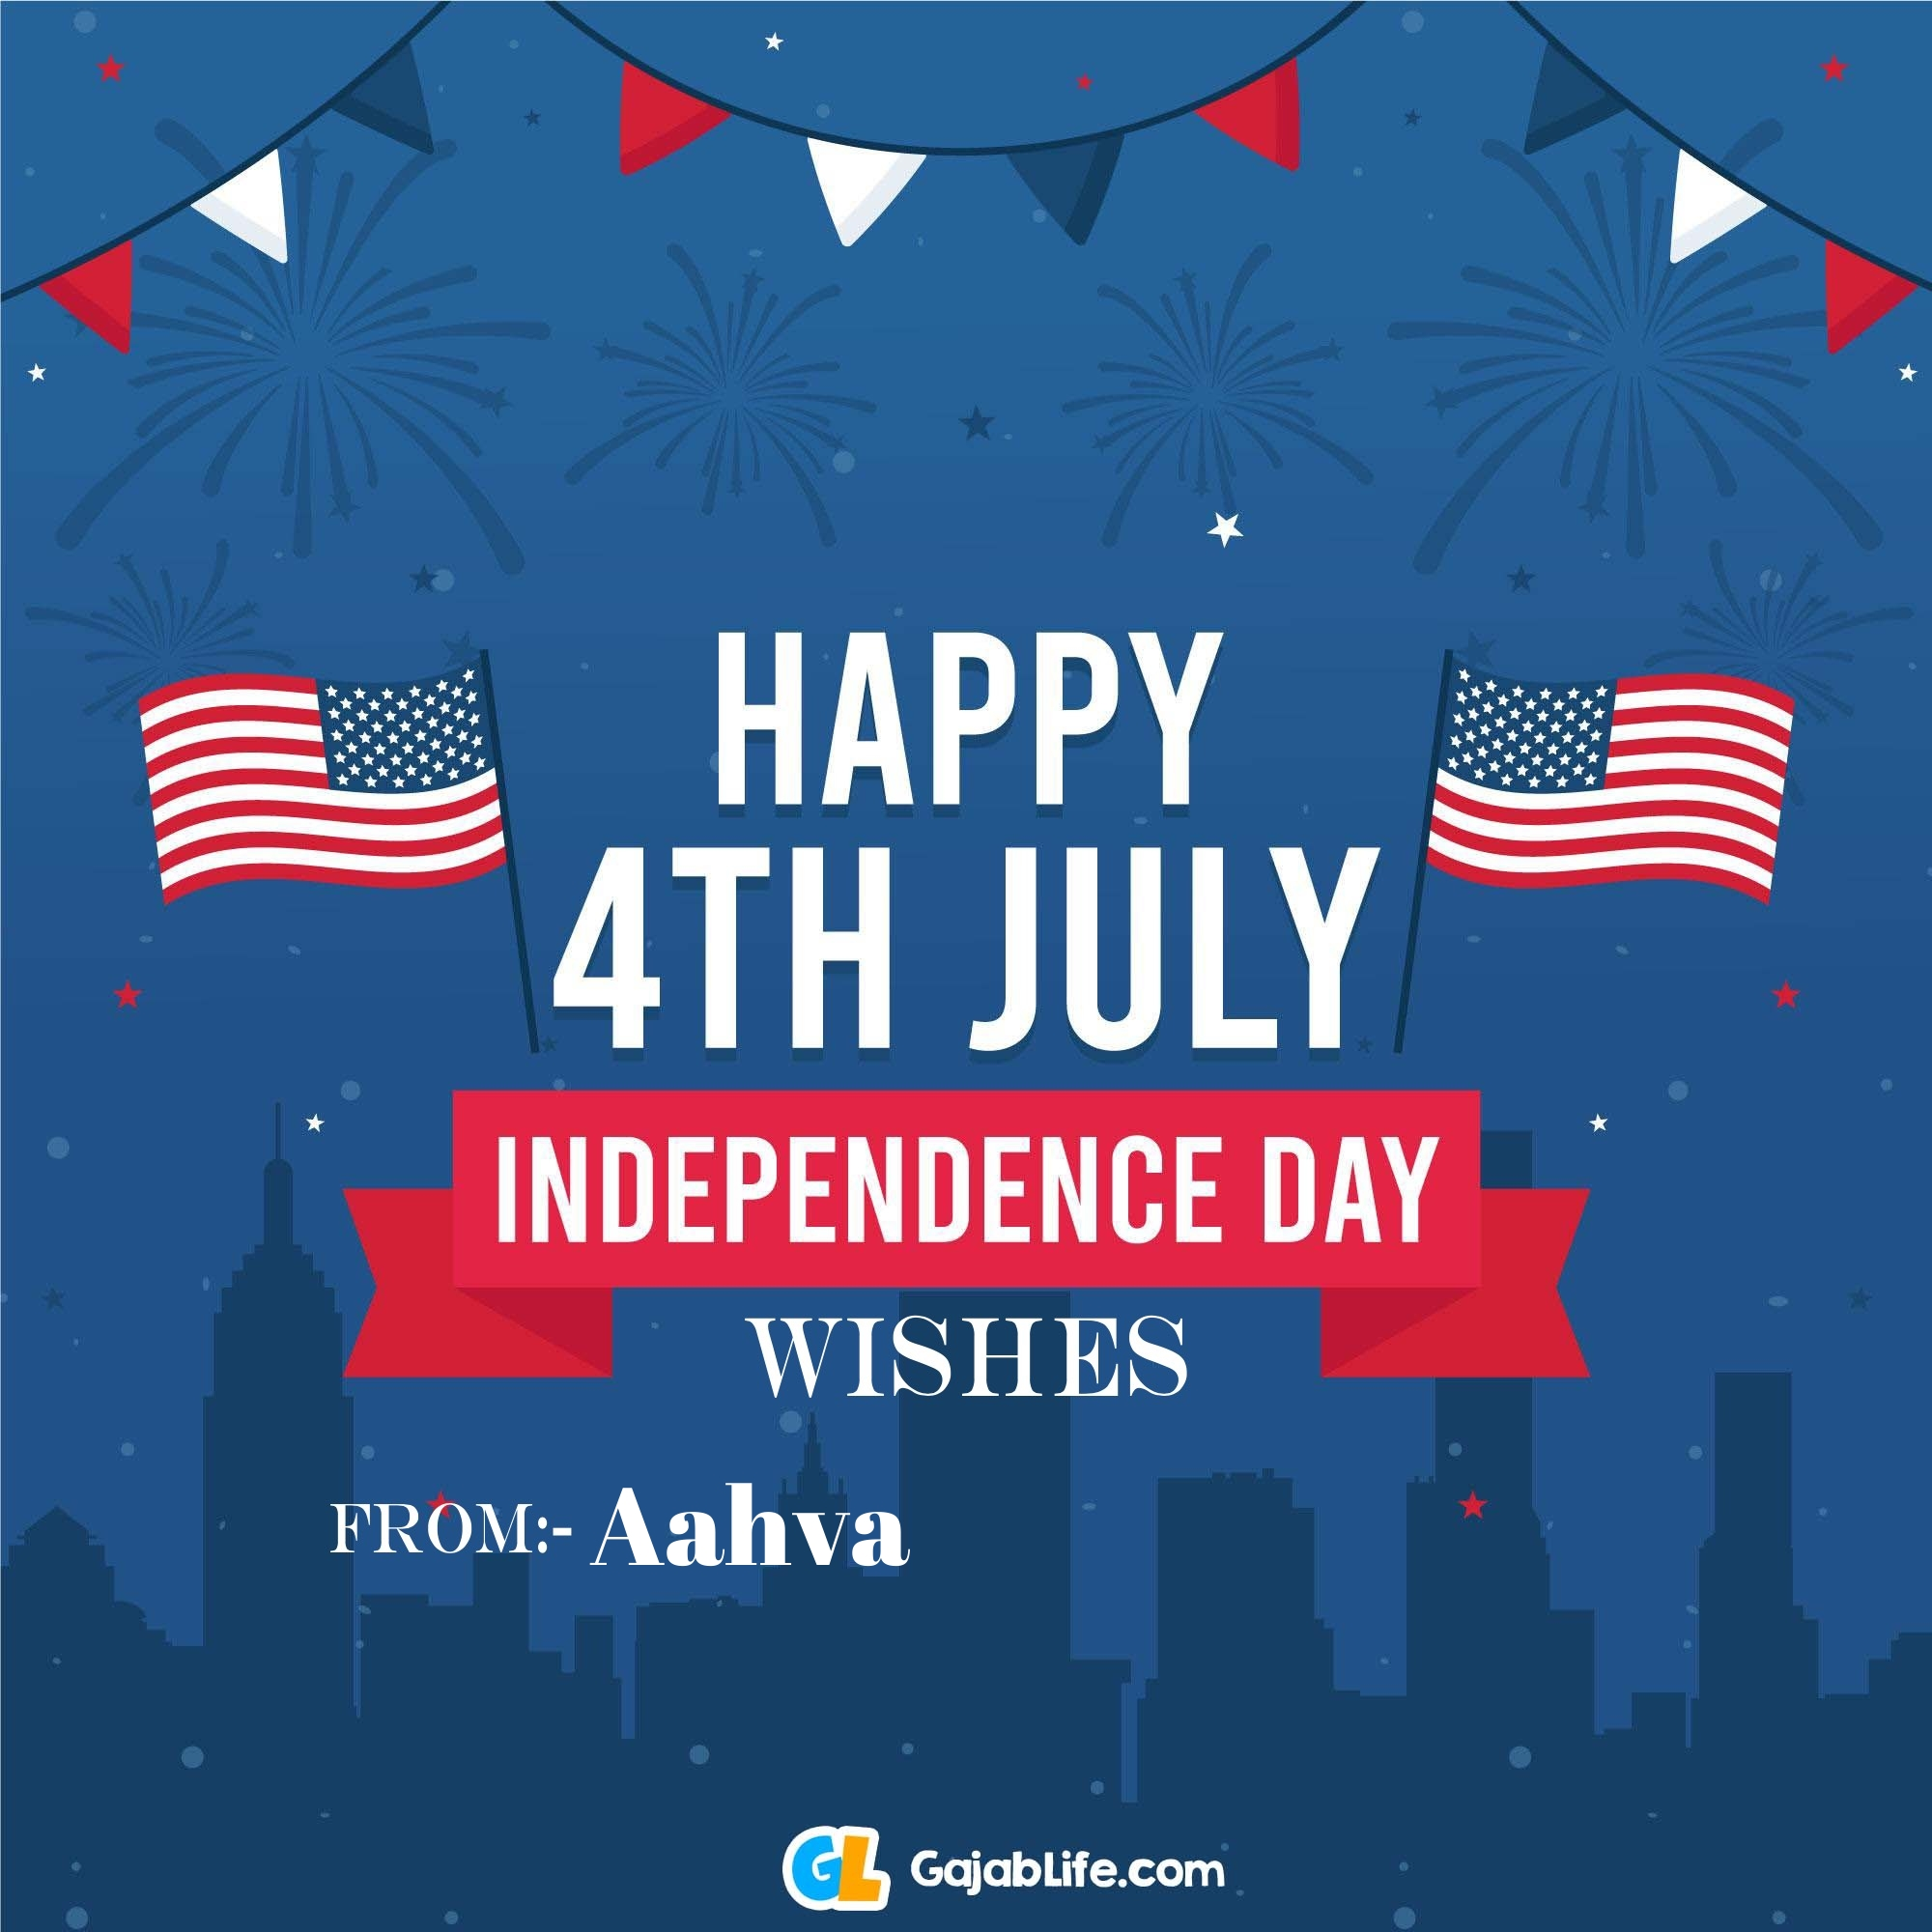 Aahva happy independence day united states of america images